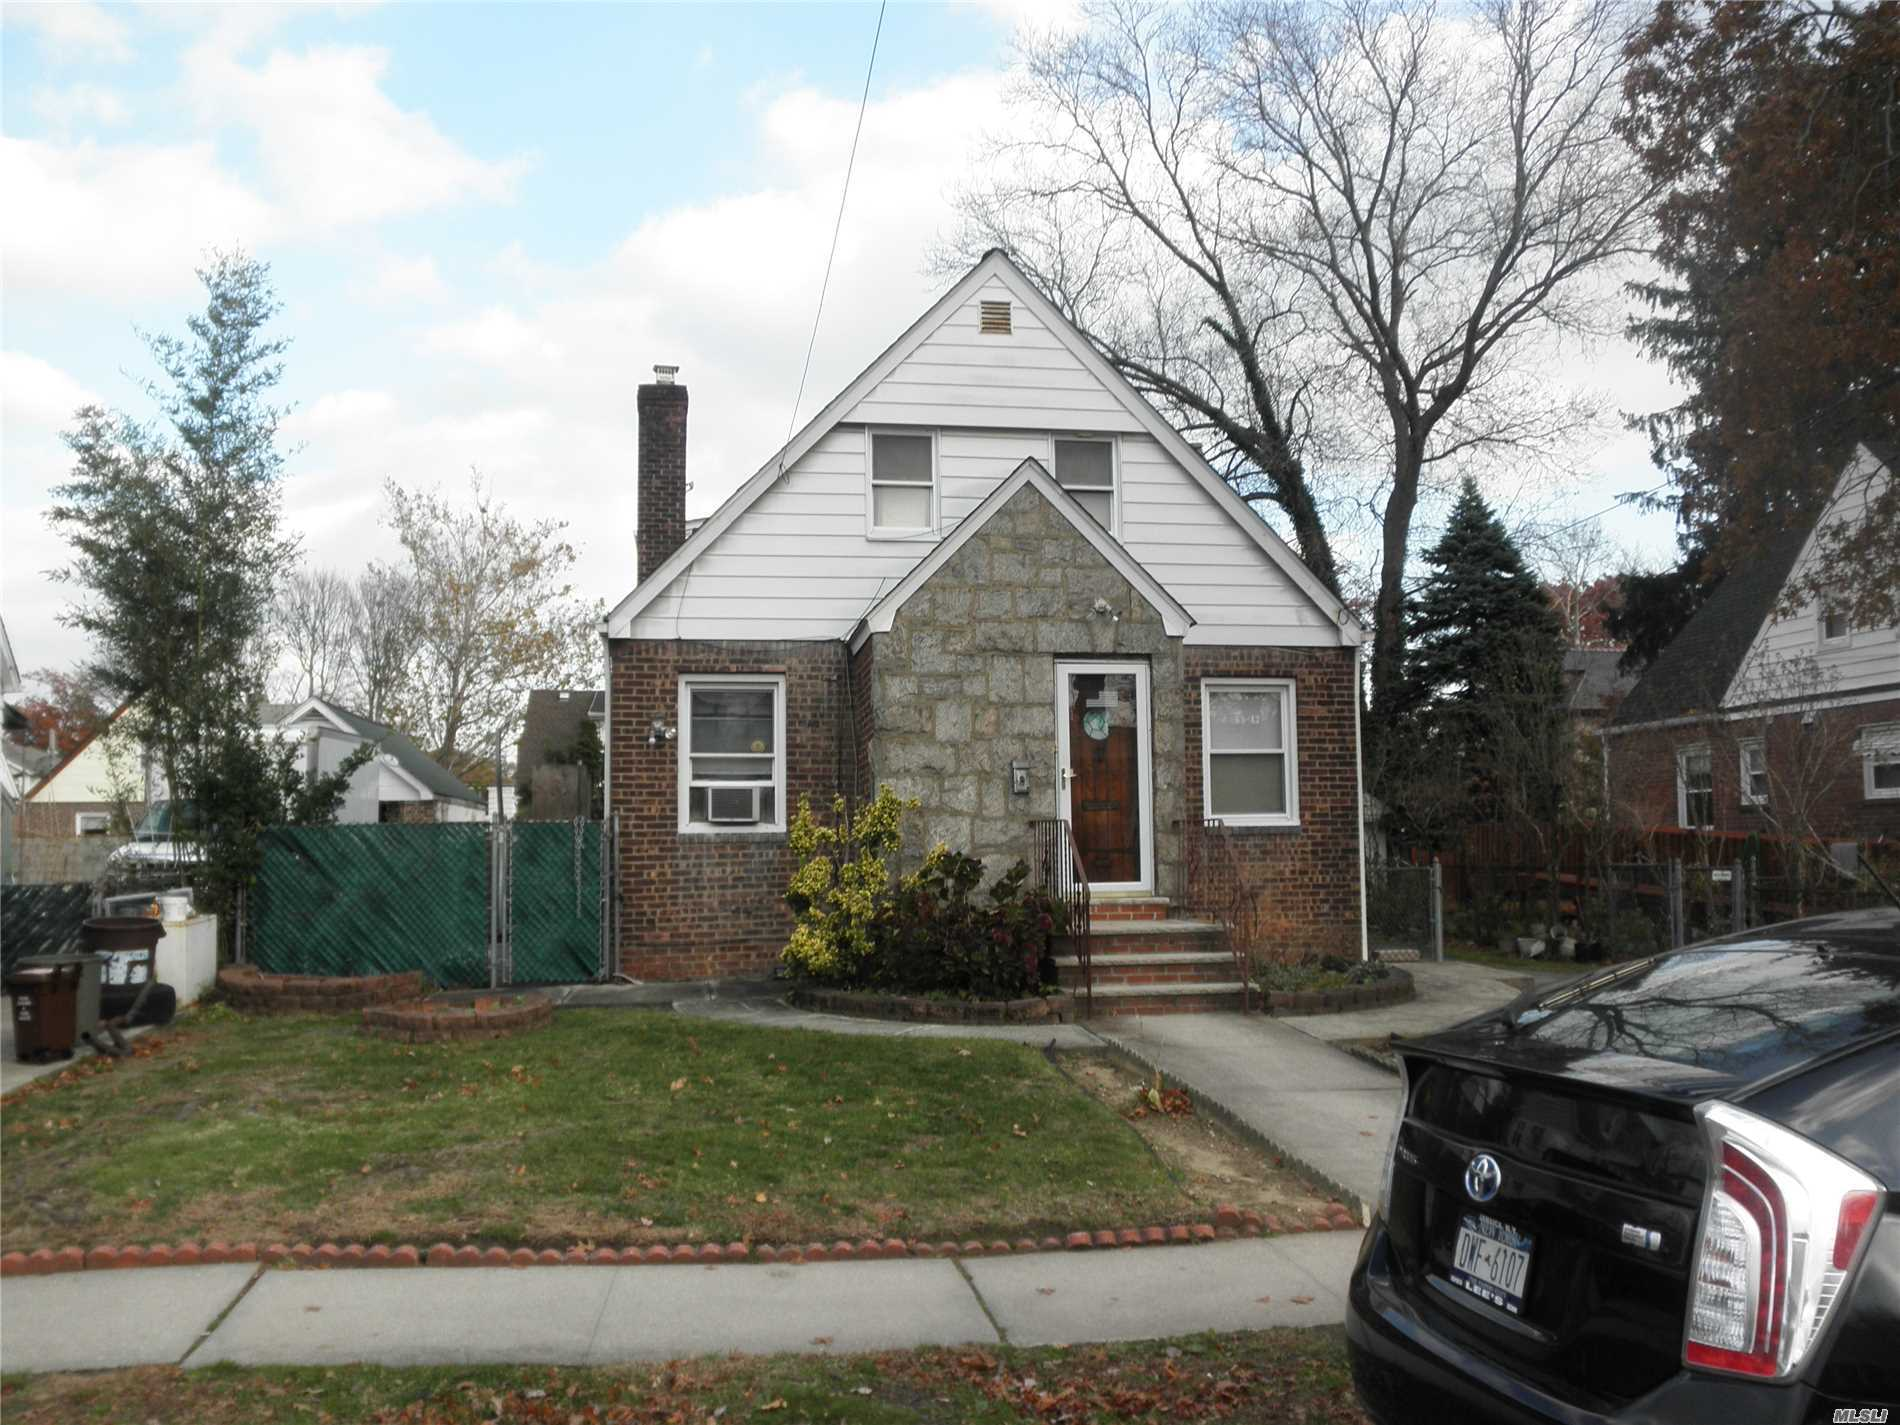 Detached Brick House With 50X100 Property ! Handyman Special House Sold As Is Condition. Great Opportunity For Build Your Dream Mansion With 5000 Sqft Lot. School District #26: P.S.173, Jhs216 And Francis Lewis High School. Close To Bus Stops, Shops And Park. Very Good Location In Heart Of Fresh Meadows,